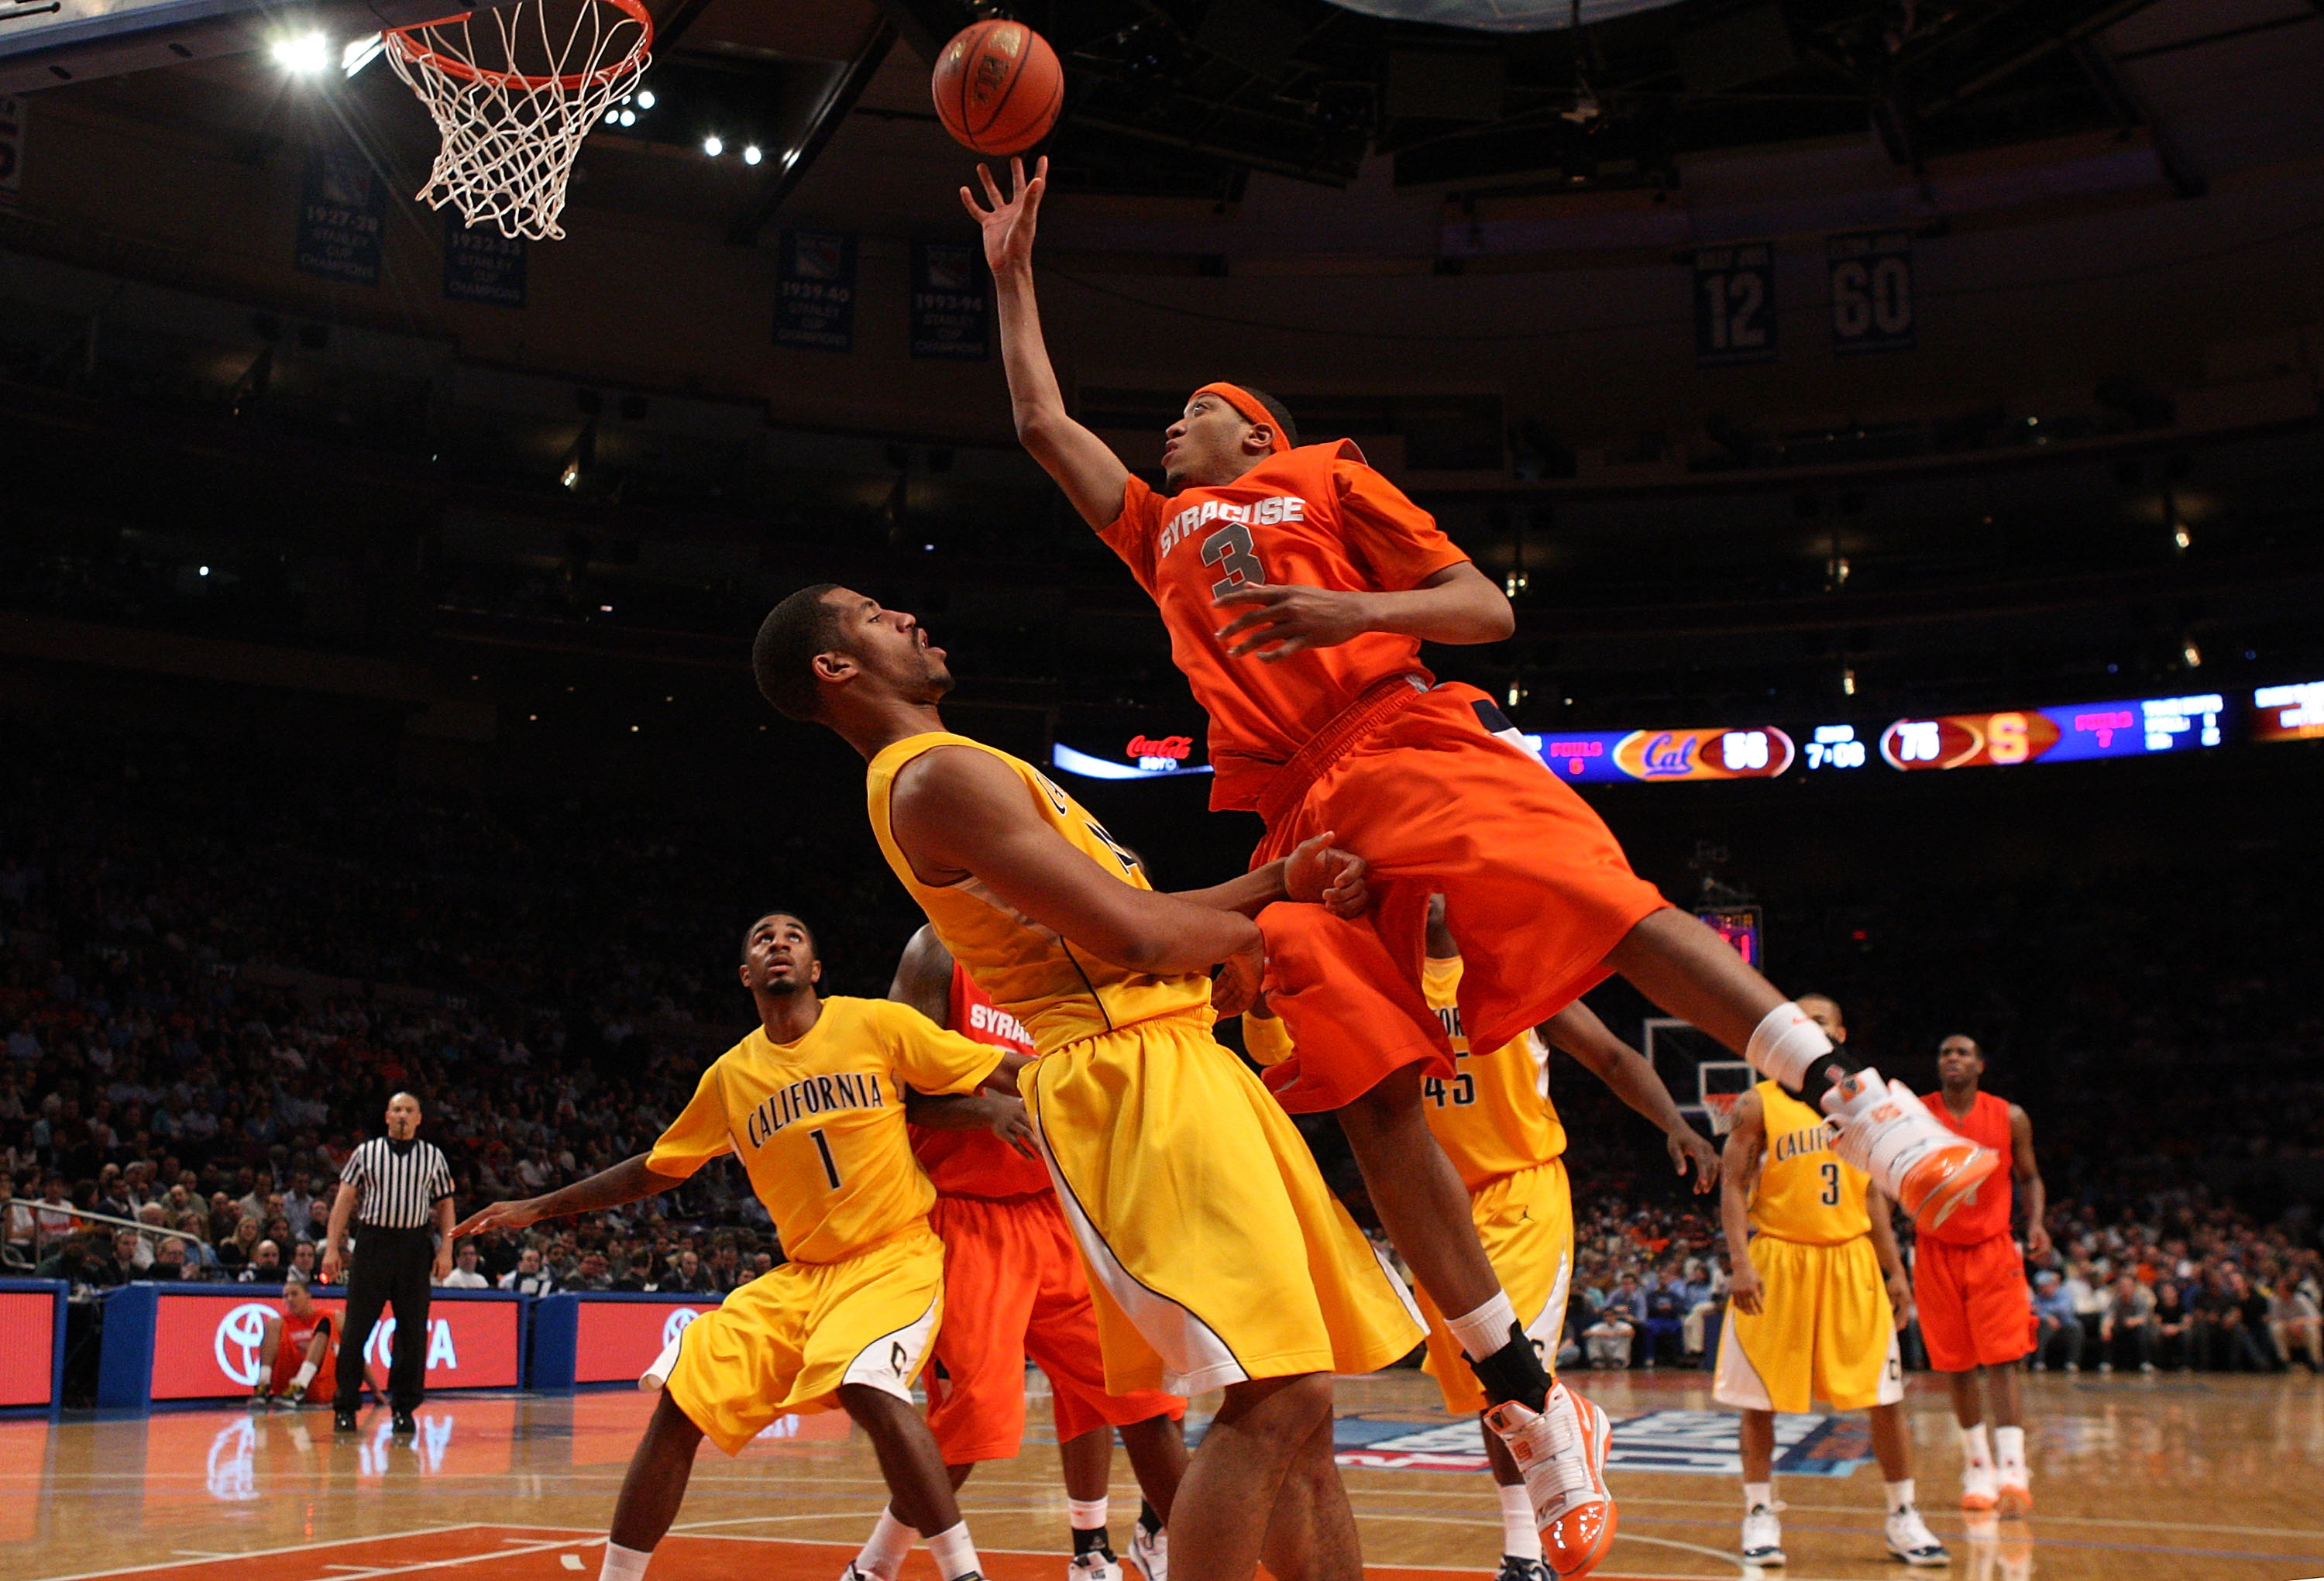 NEW YORK - NOVEMBER 19:  Mookie Jones #3 of the Syracuse Orange lays up a basket against the California Golden Bears during their semifinal game of the 2K Sports Classic on  November 19, 2009 at Madison Square Garden in New York City.  (Photo by Jim McIsa